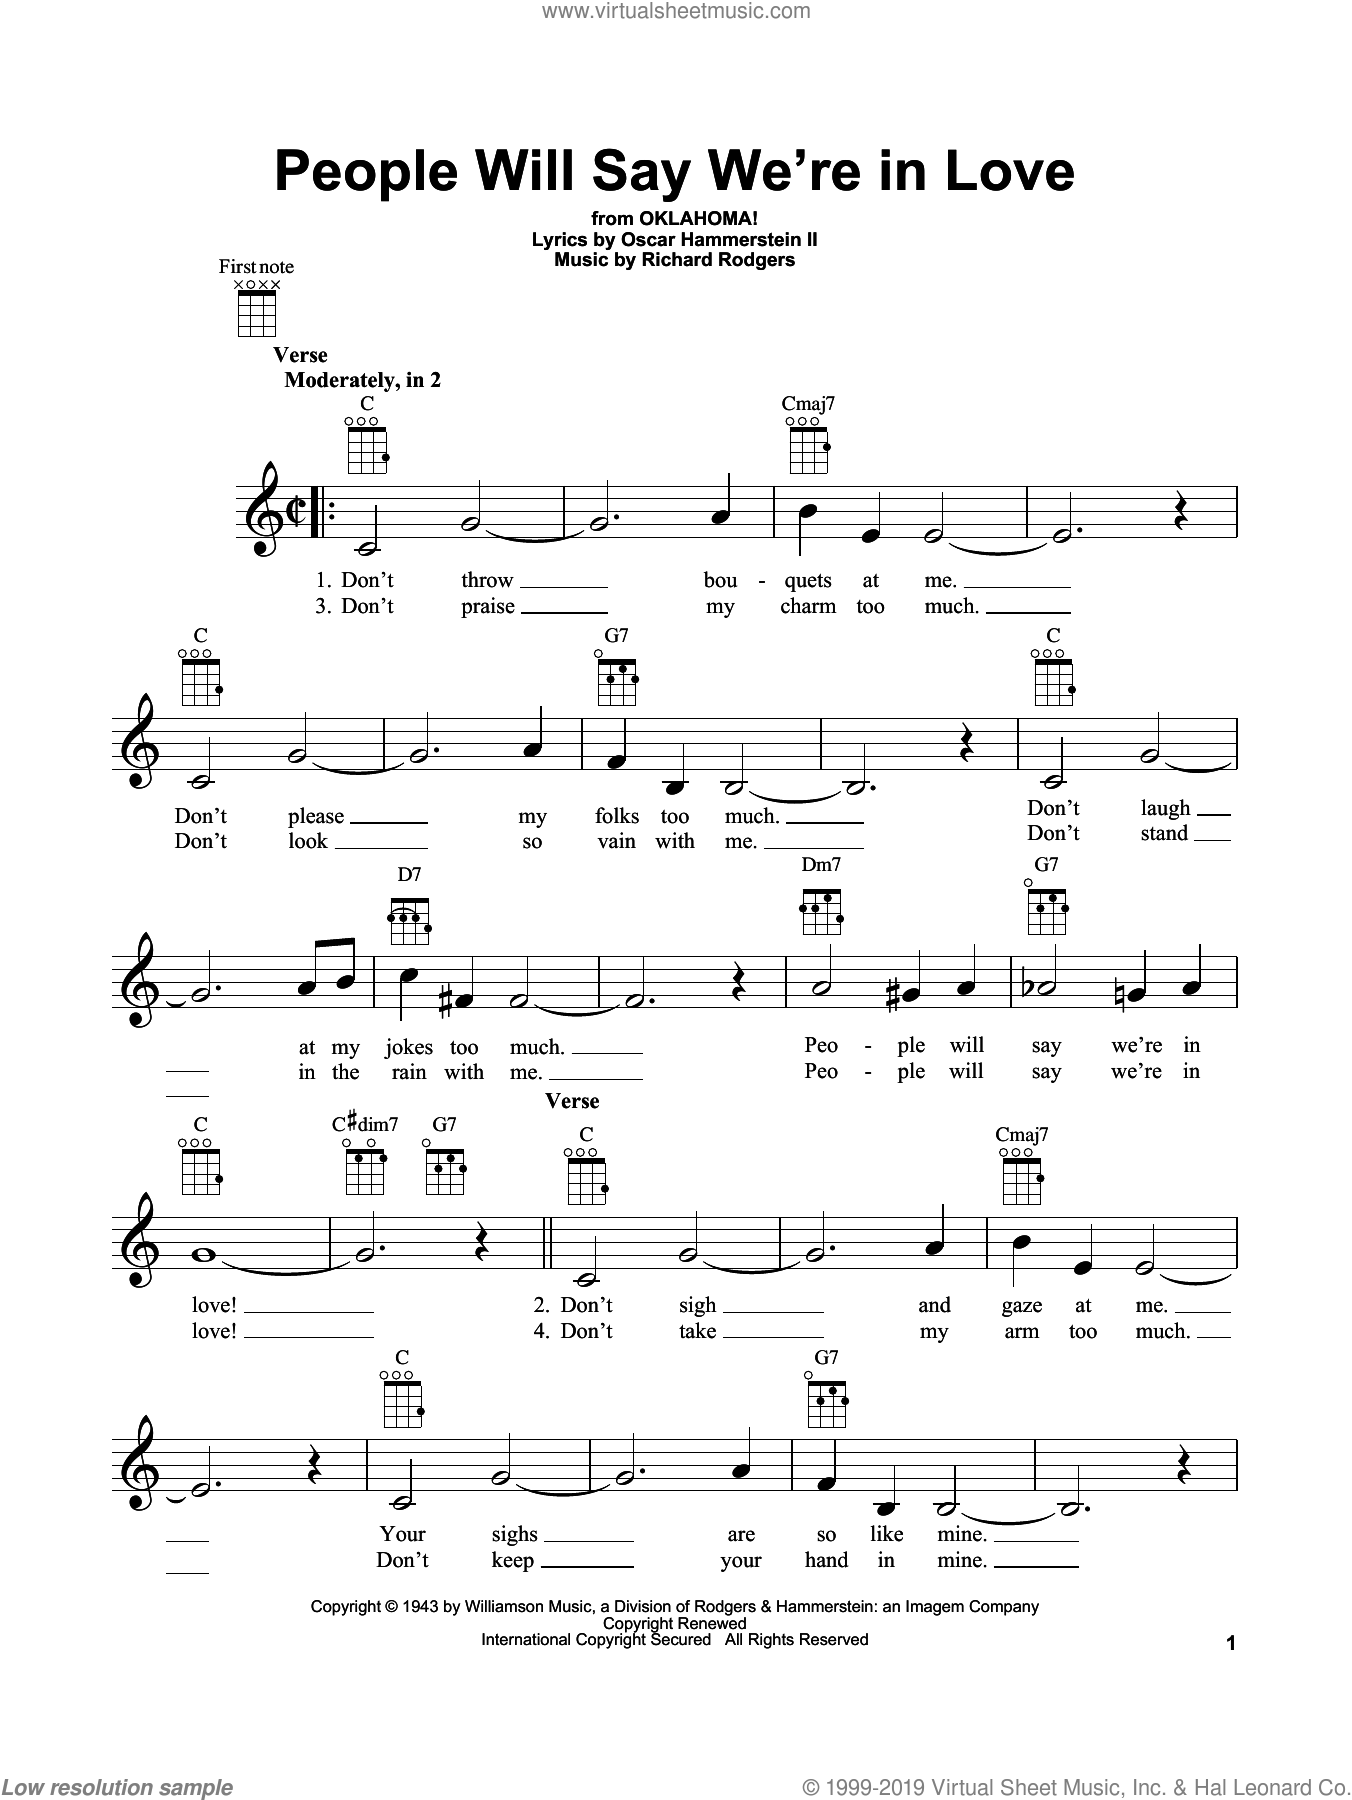 People Will Say We're In Love sheet music for ukulele by Rodgers & Hammerstein, Oklahoma! (Musical), Oscar II Hammerstein and Richard Rodgers, intermediate skill level